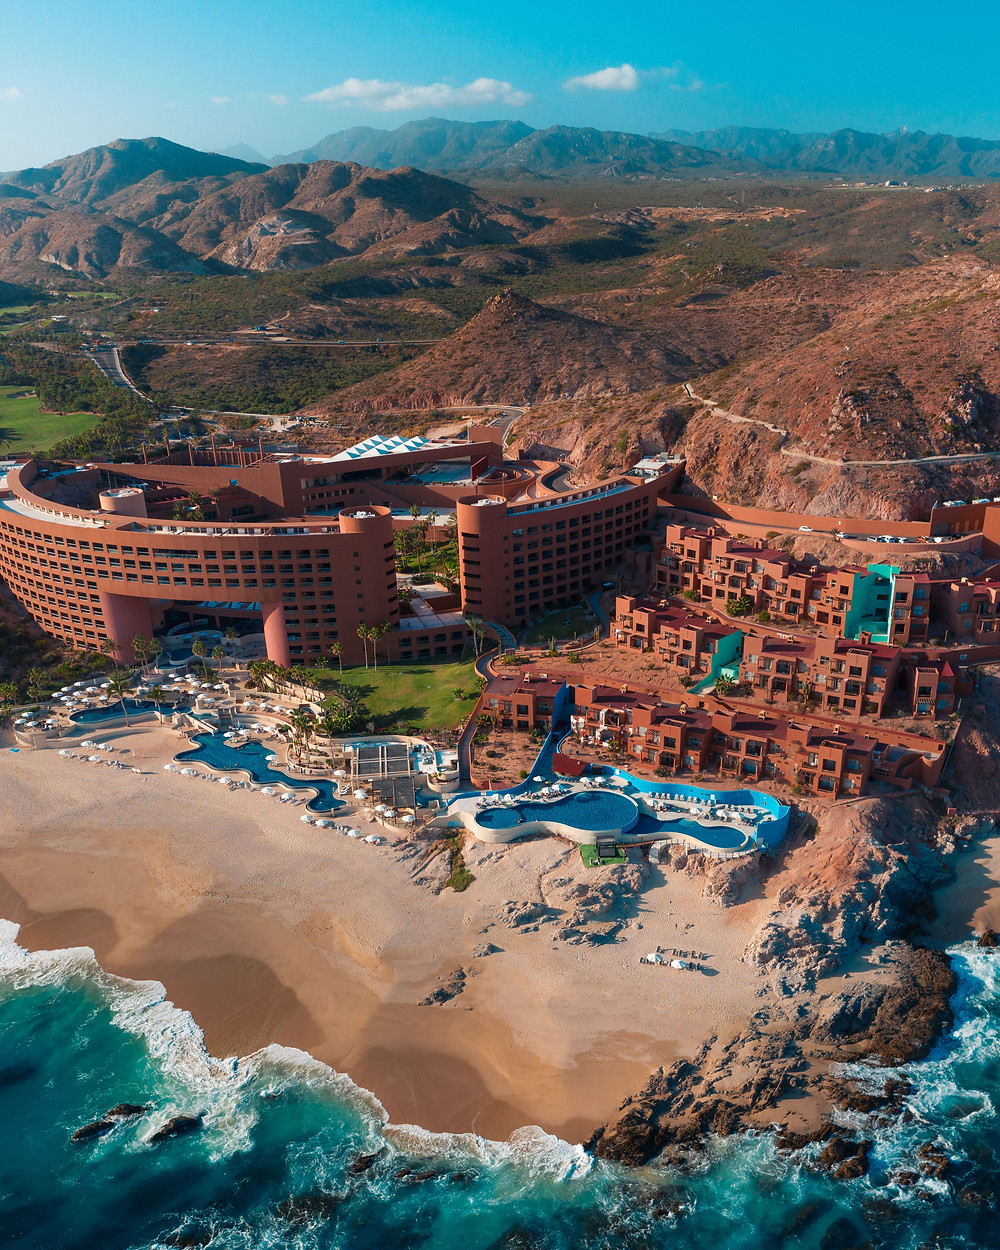 Aerial View of beach front Westin resort in front of desert mountain ranges